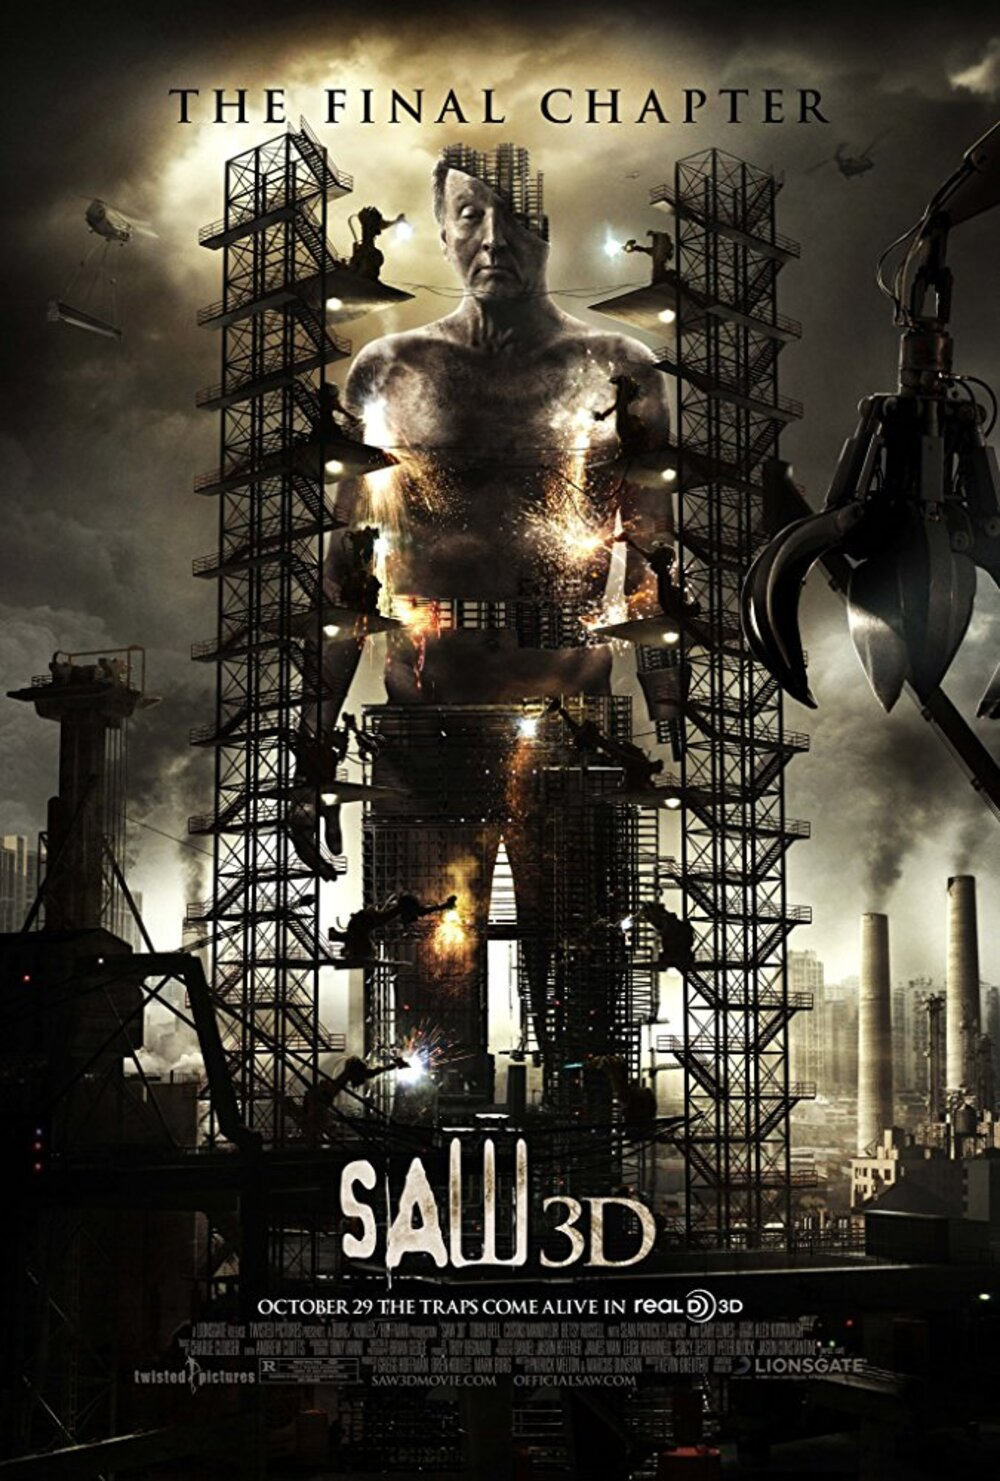 Saw 3D: The Final Chapter (2010)